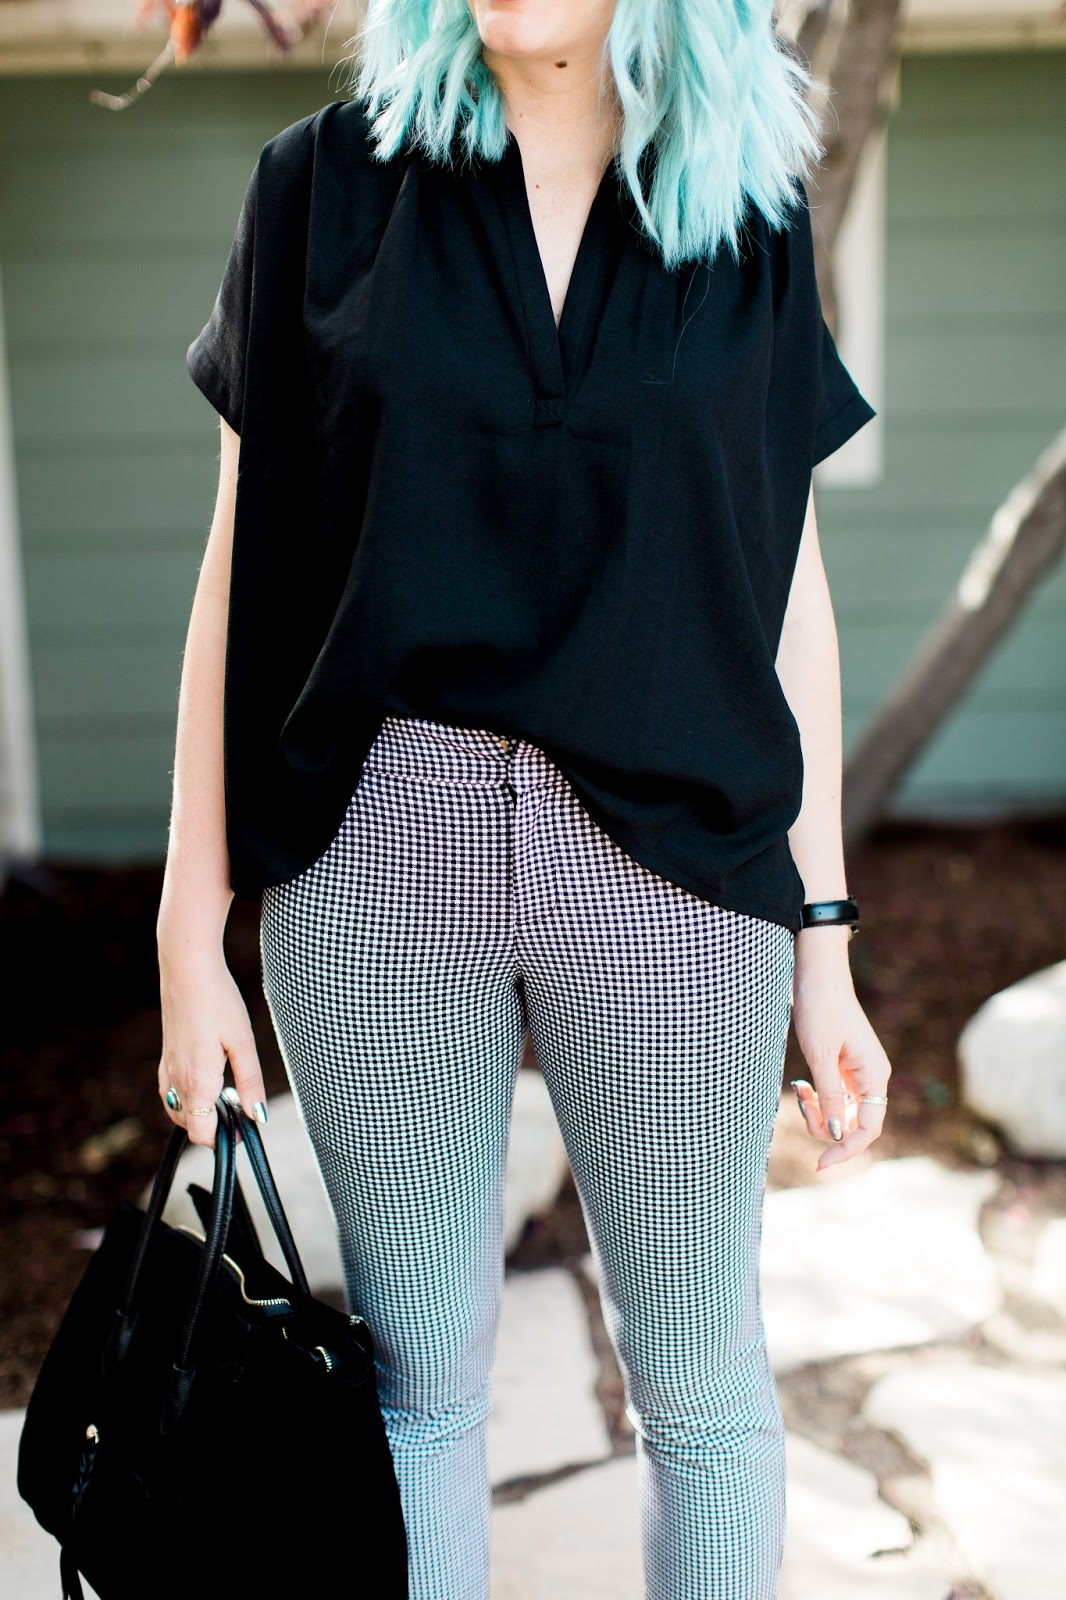 Black Top, Old Navy, TOBI